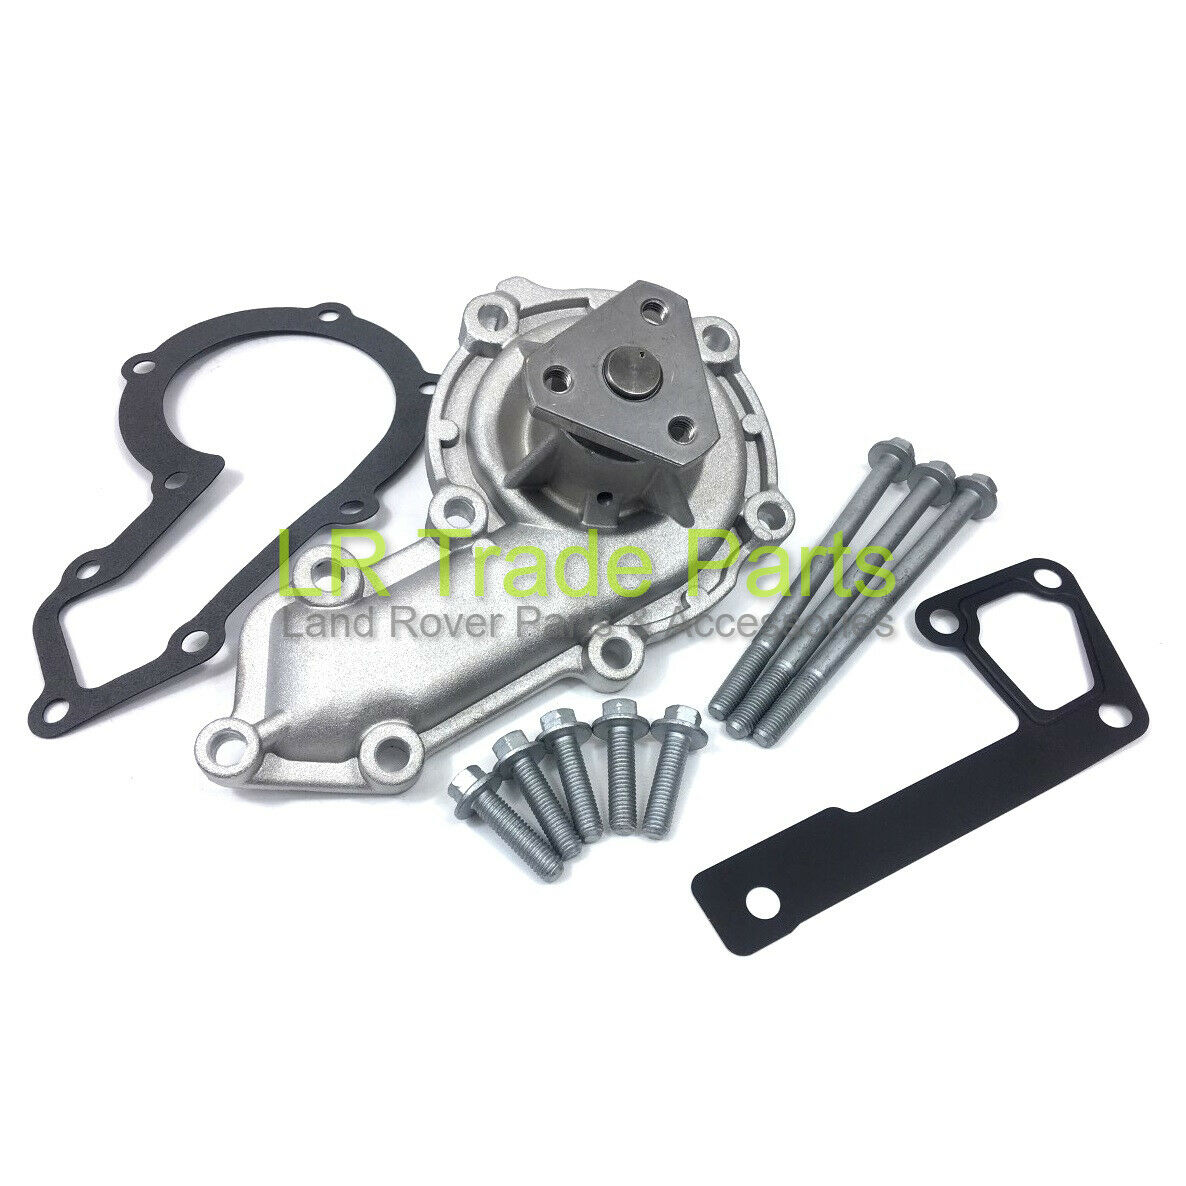 GASKET /& BOLTS KIT PEB500090 LAND ROVER DEFENDER DISCOVERY 300TDI WATER PUMP